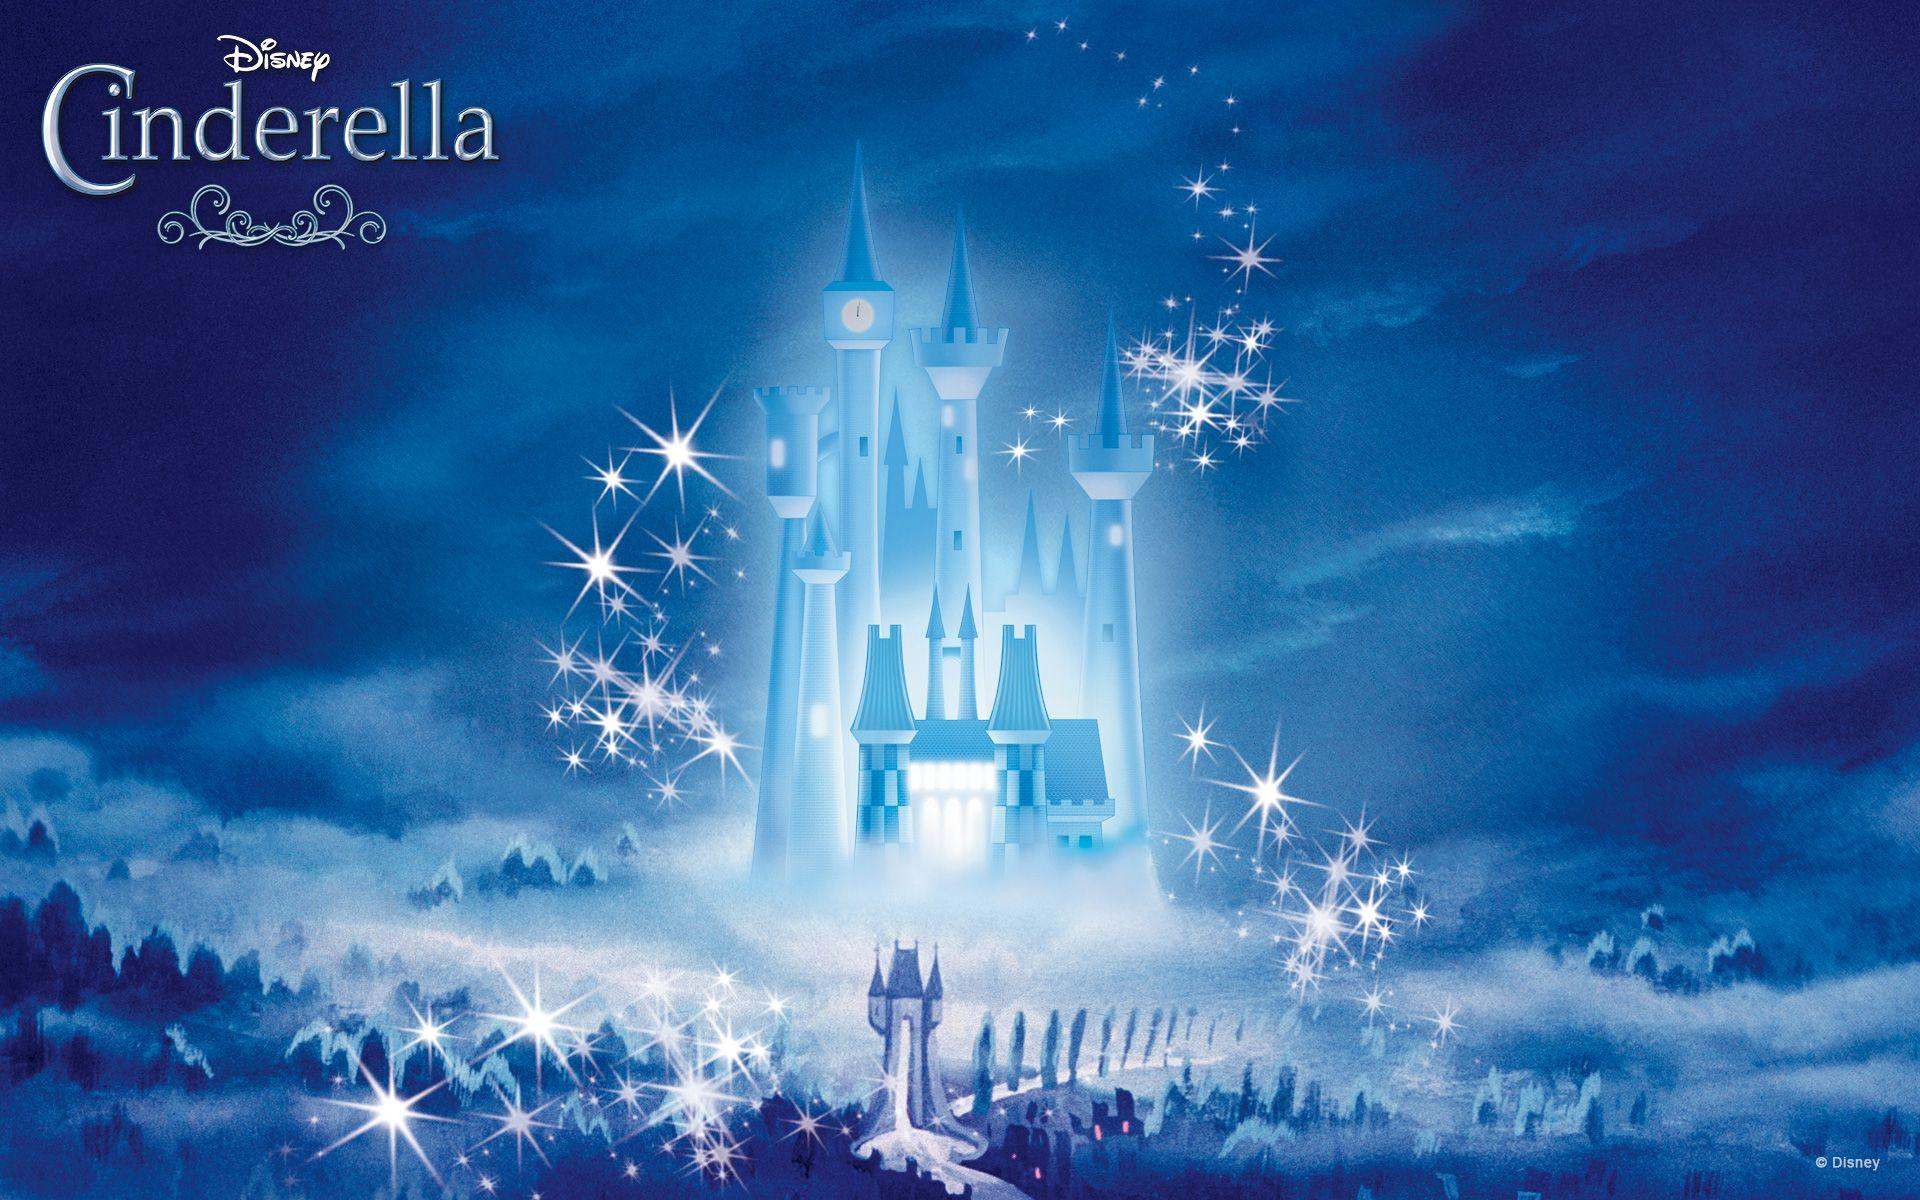 Cinderella Wallpapers High Quality HD Photos 1080P ON26